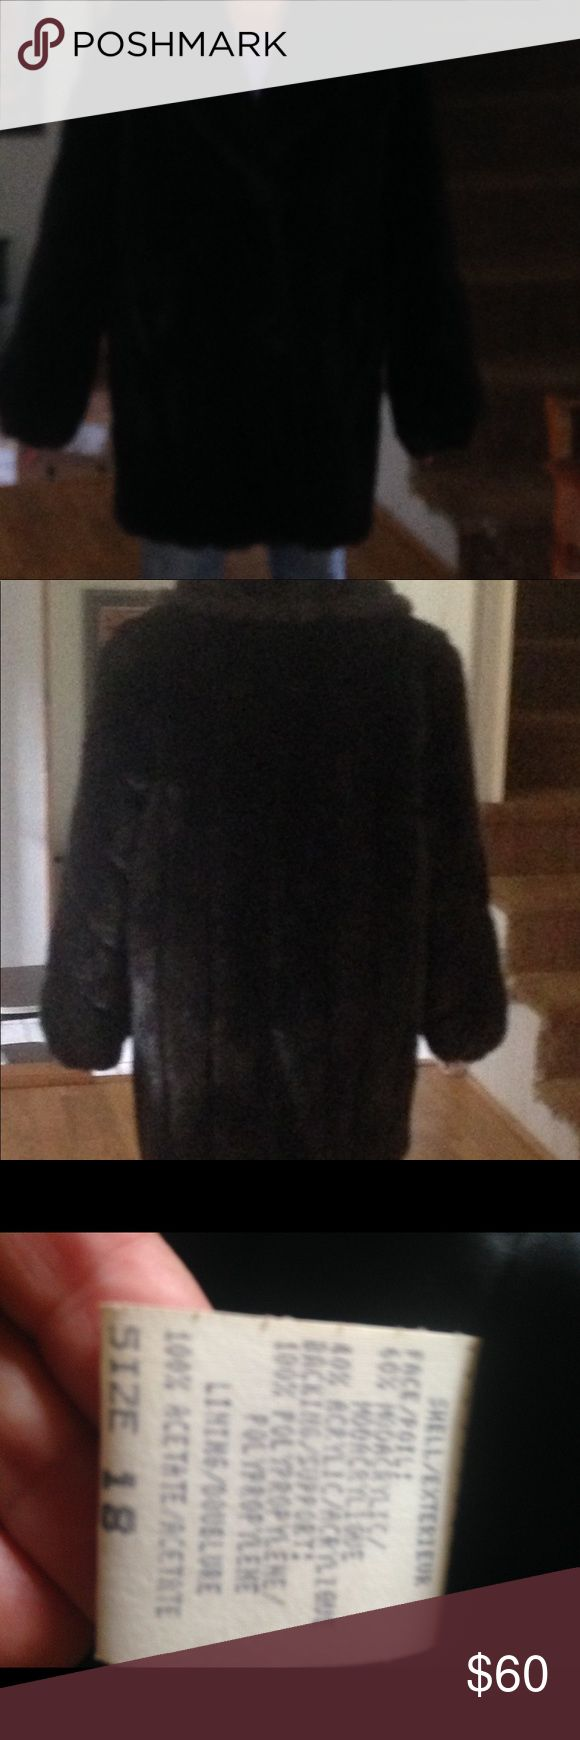 Vintage faux fur coat By Monterey Fashions. 3/4 length. Excellent vintage condition. Cocoa brown, rubbed. Will definitely keep you warm. Sleeves stretchy at wrist. monterey Fashions Jackets & Coats